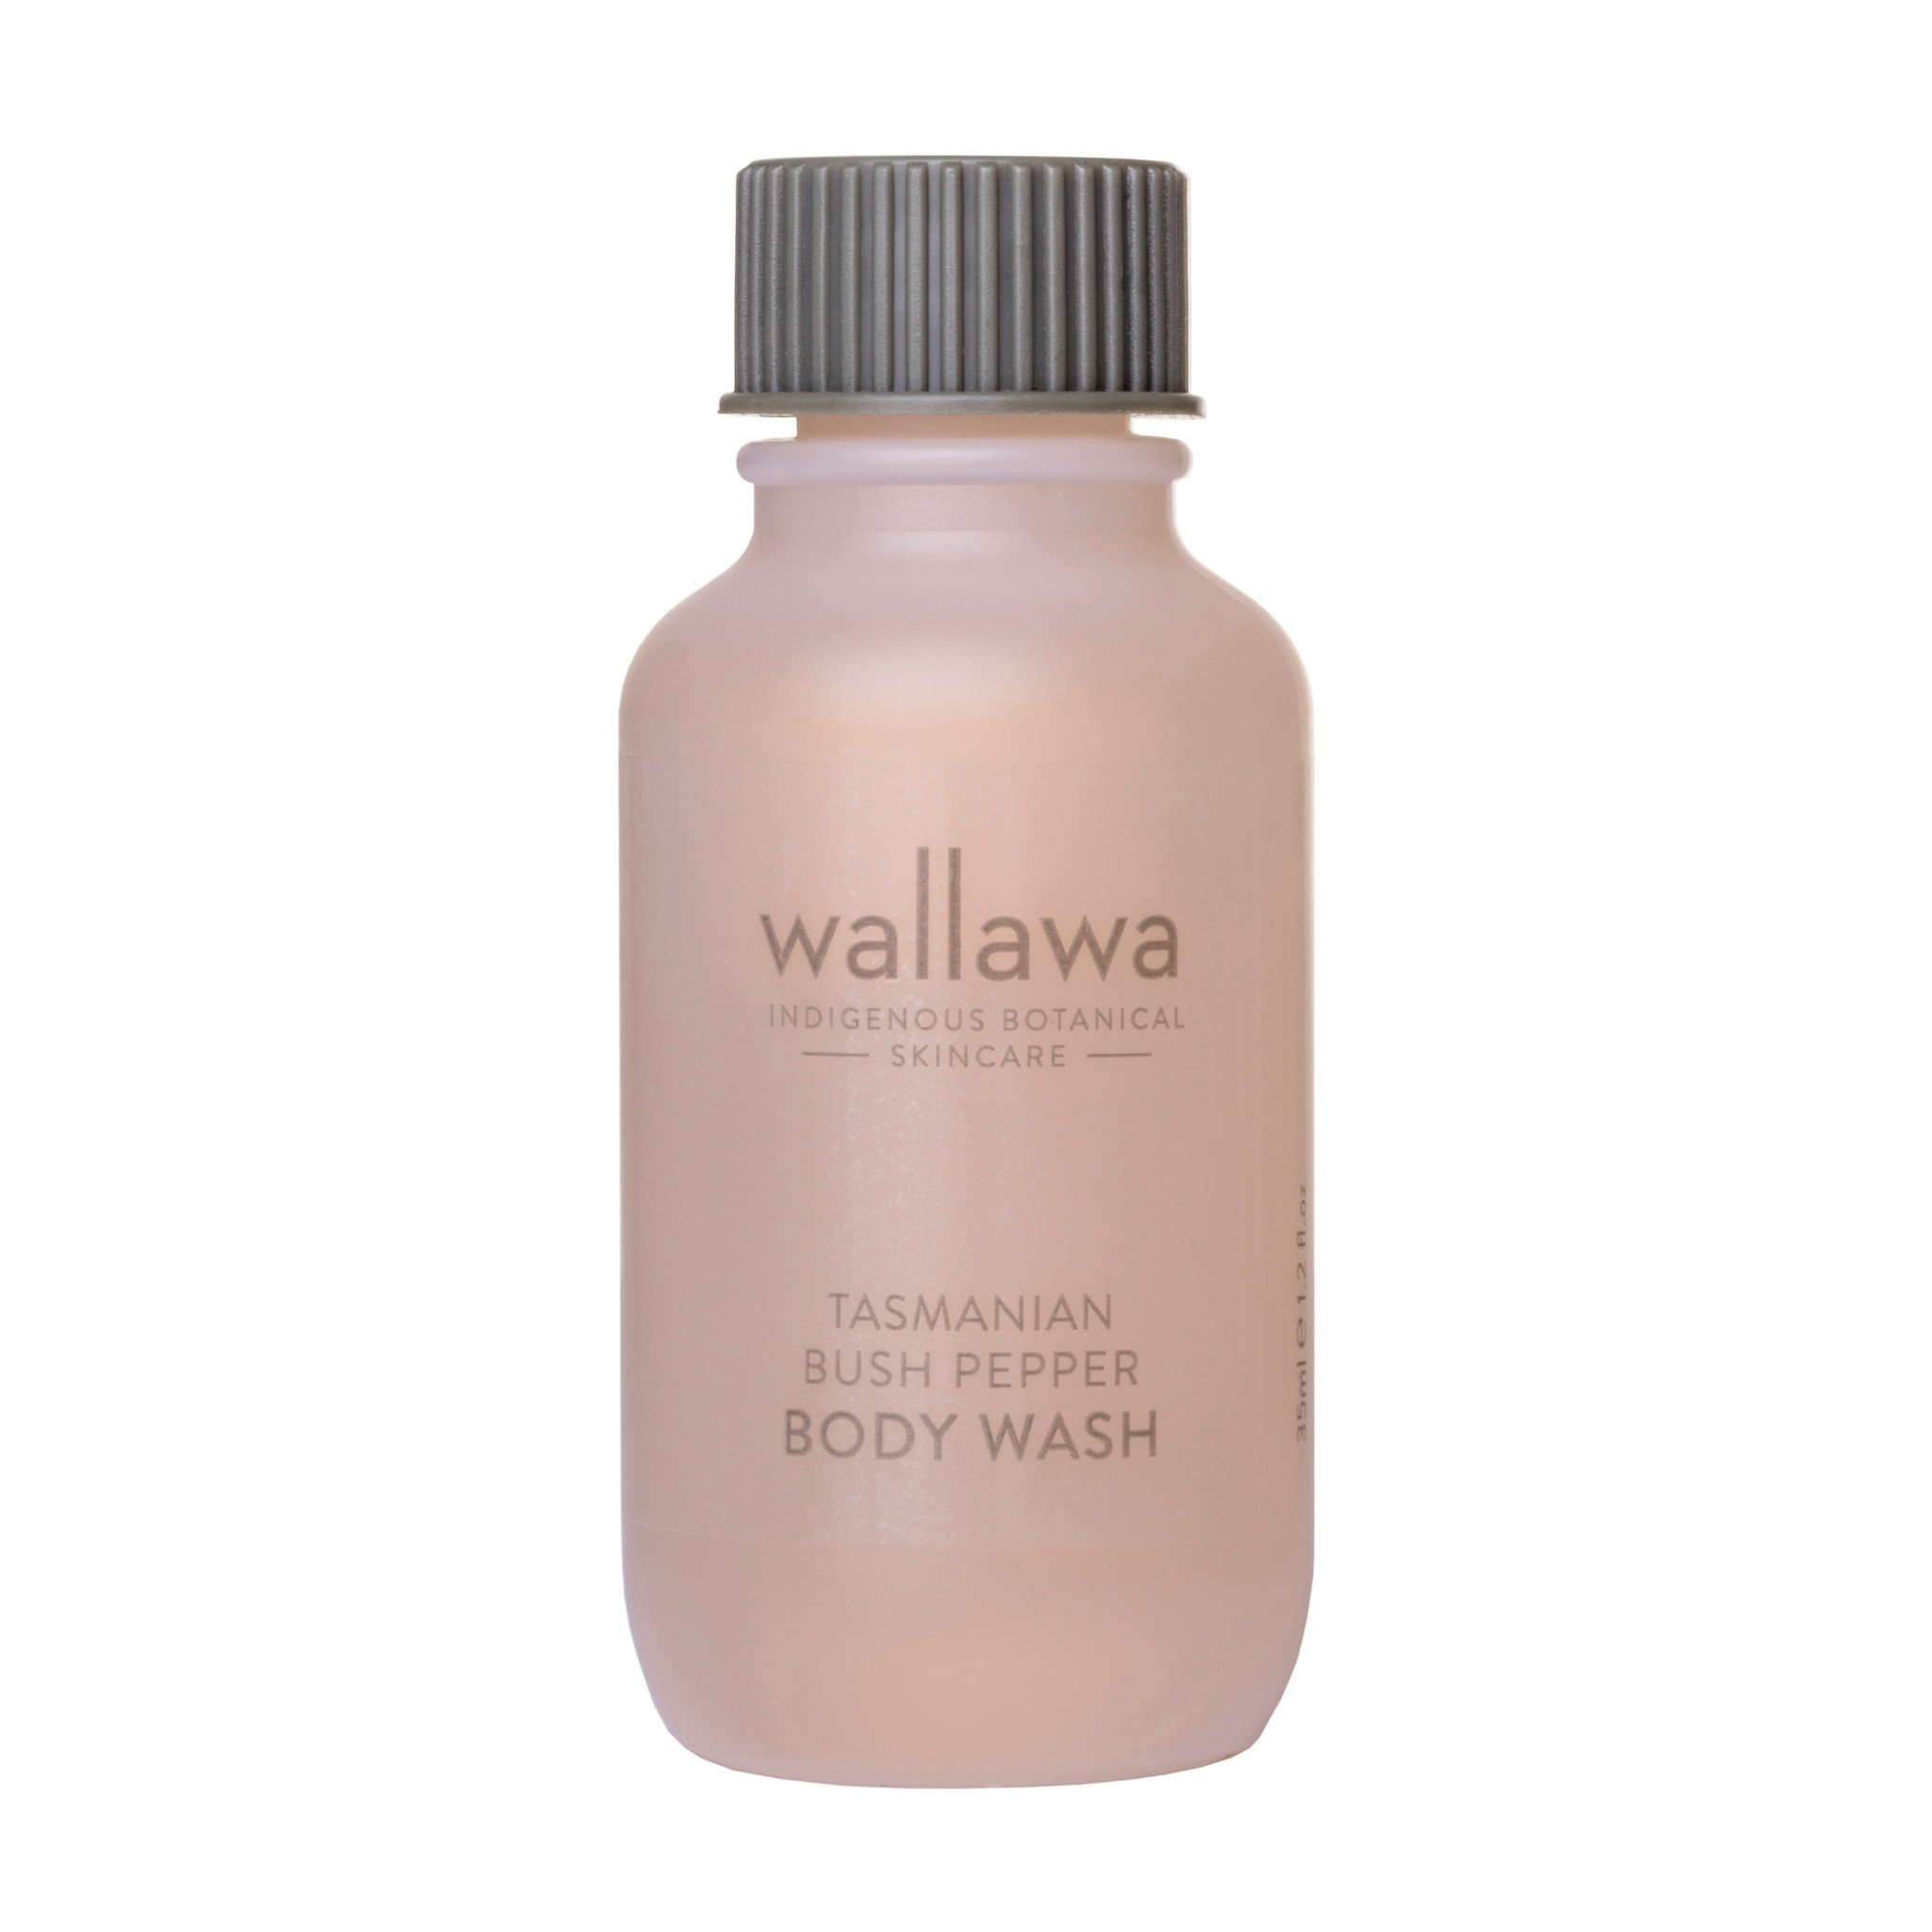 Wallawa Body Wash (324 units)